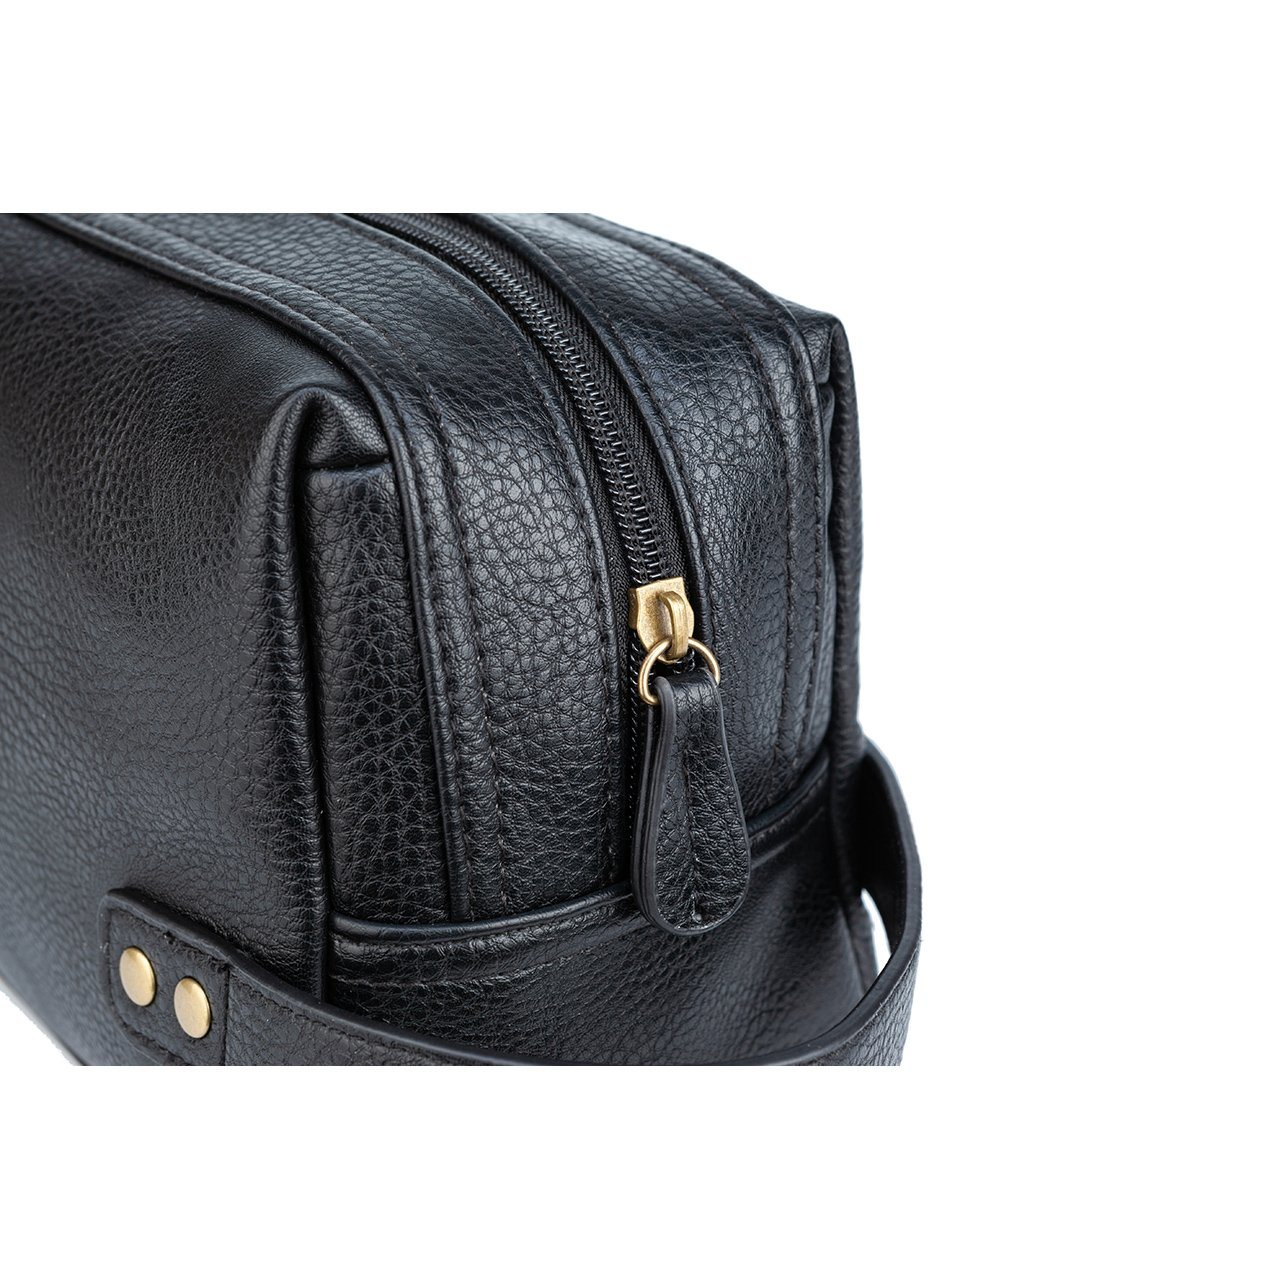 Dopp Kit - Black Fletcher Vegan Leather Dopp Kit